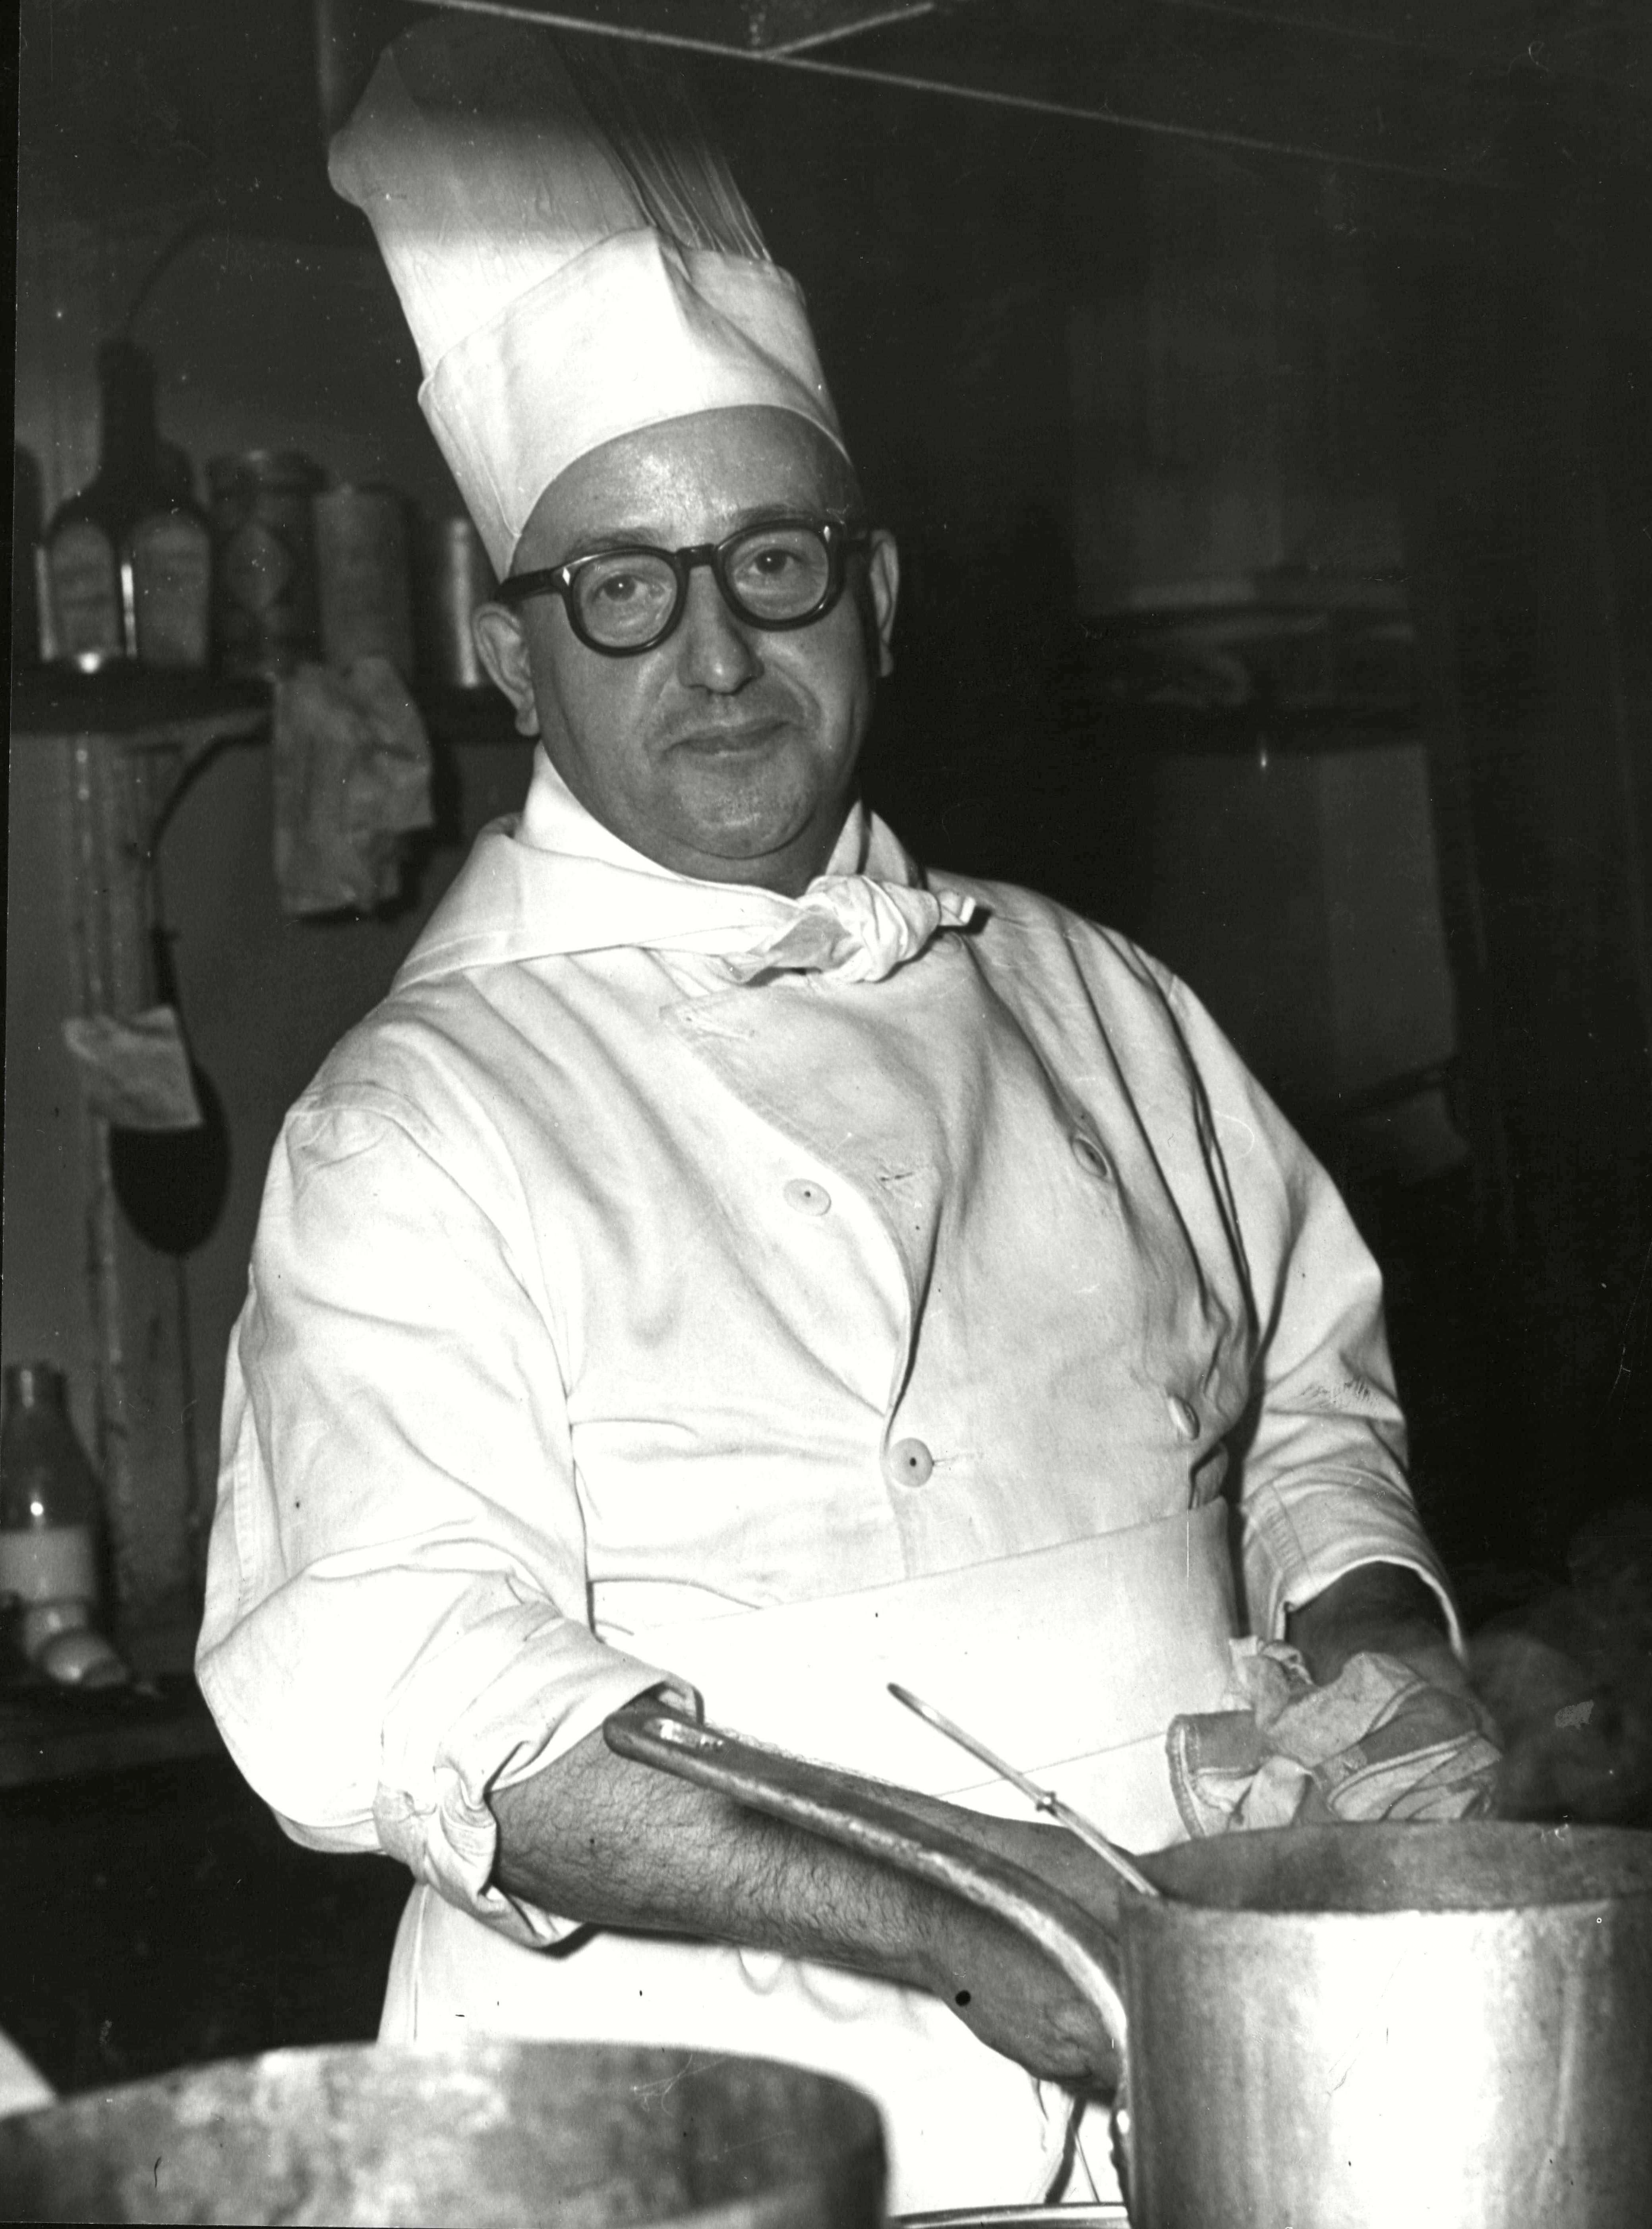 Chef John Wright Former Sergeant In The Catering Corps Cooking In The Kitchen Of The Moulin D'or Restaurant Soho 27 Dec 1955 Photo by Frank Hudson/ANL/REX/Shutterstock